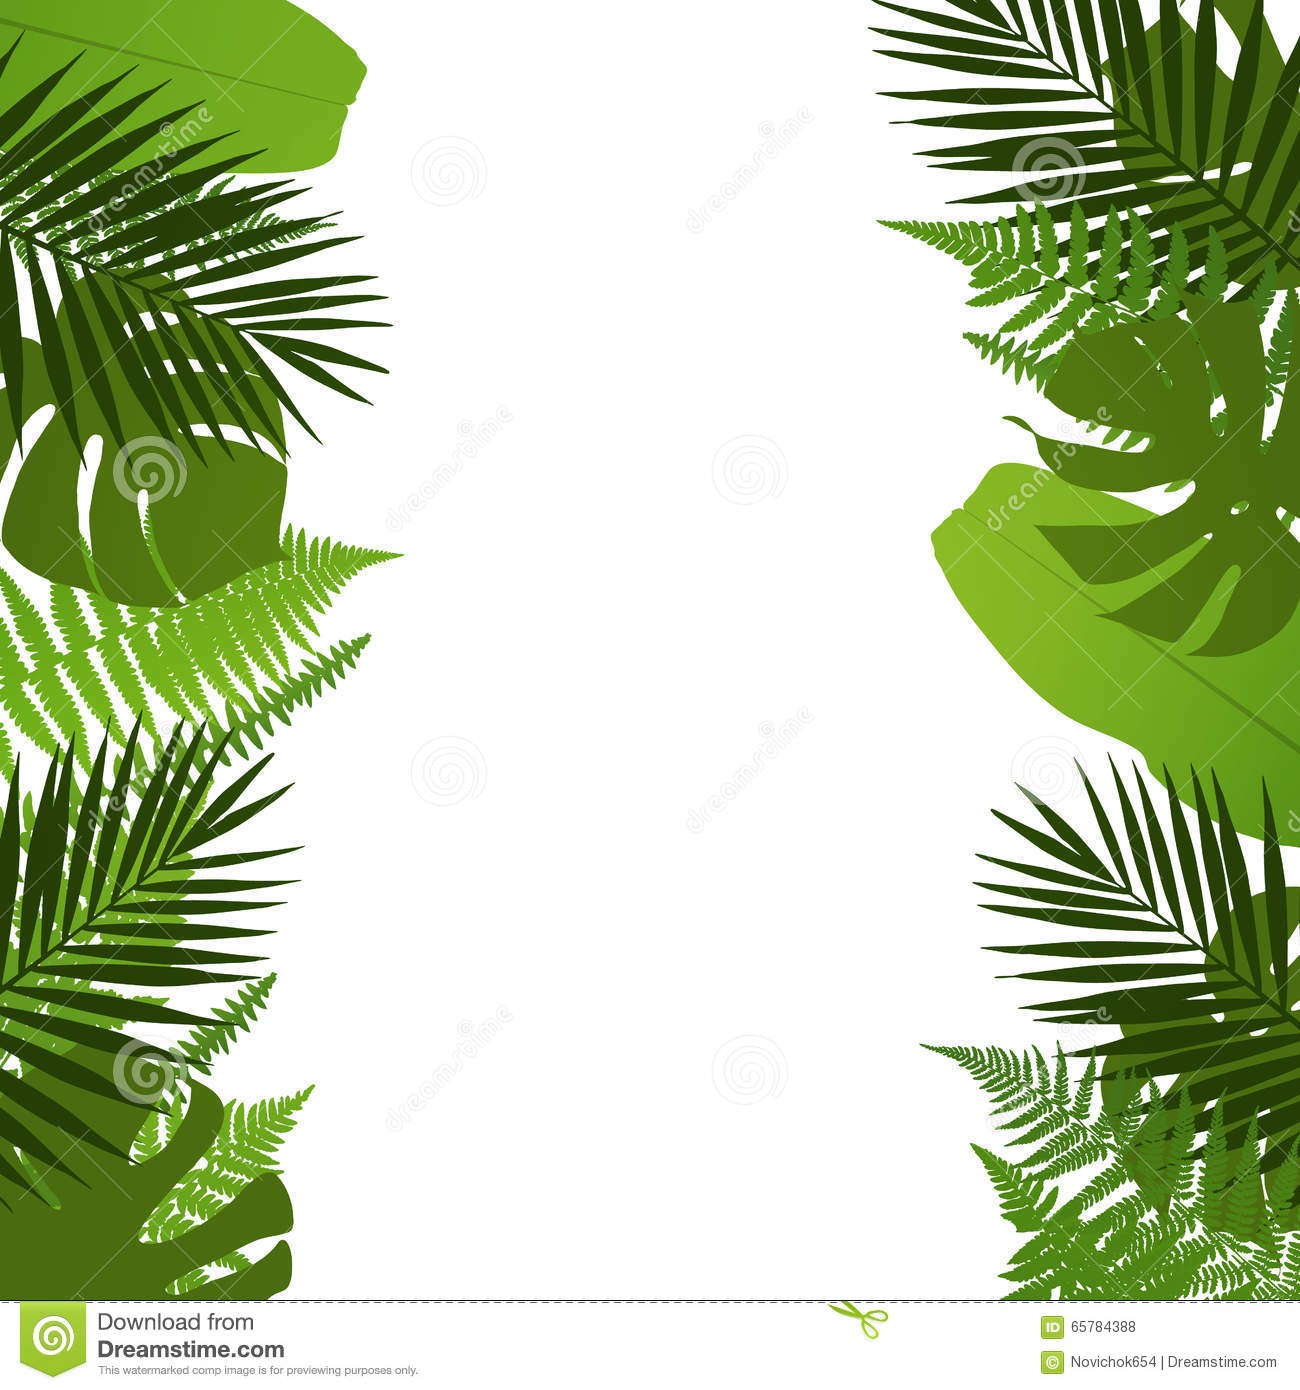 Tropical Leaves Background With Palm,fern,monstera And Banana.